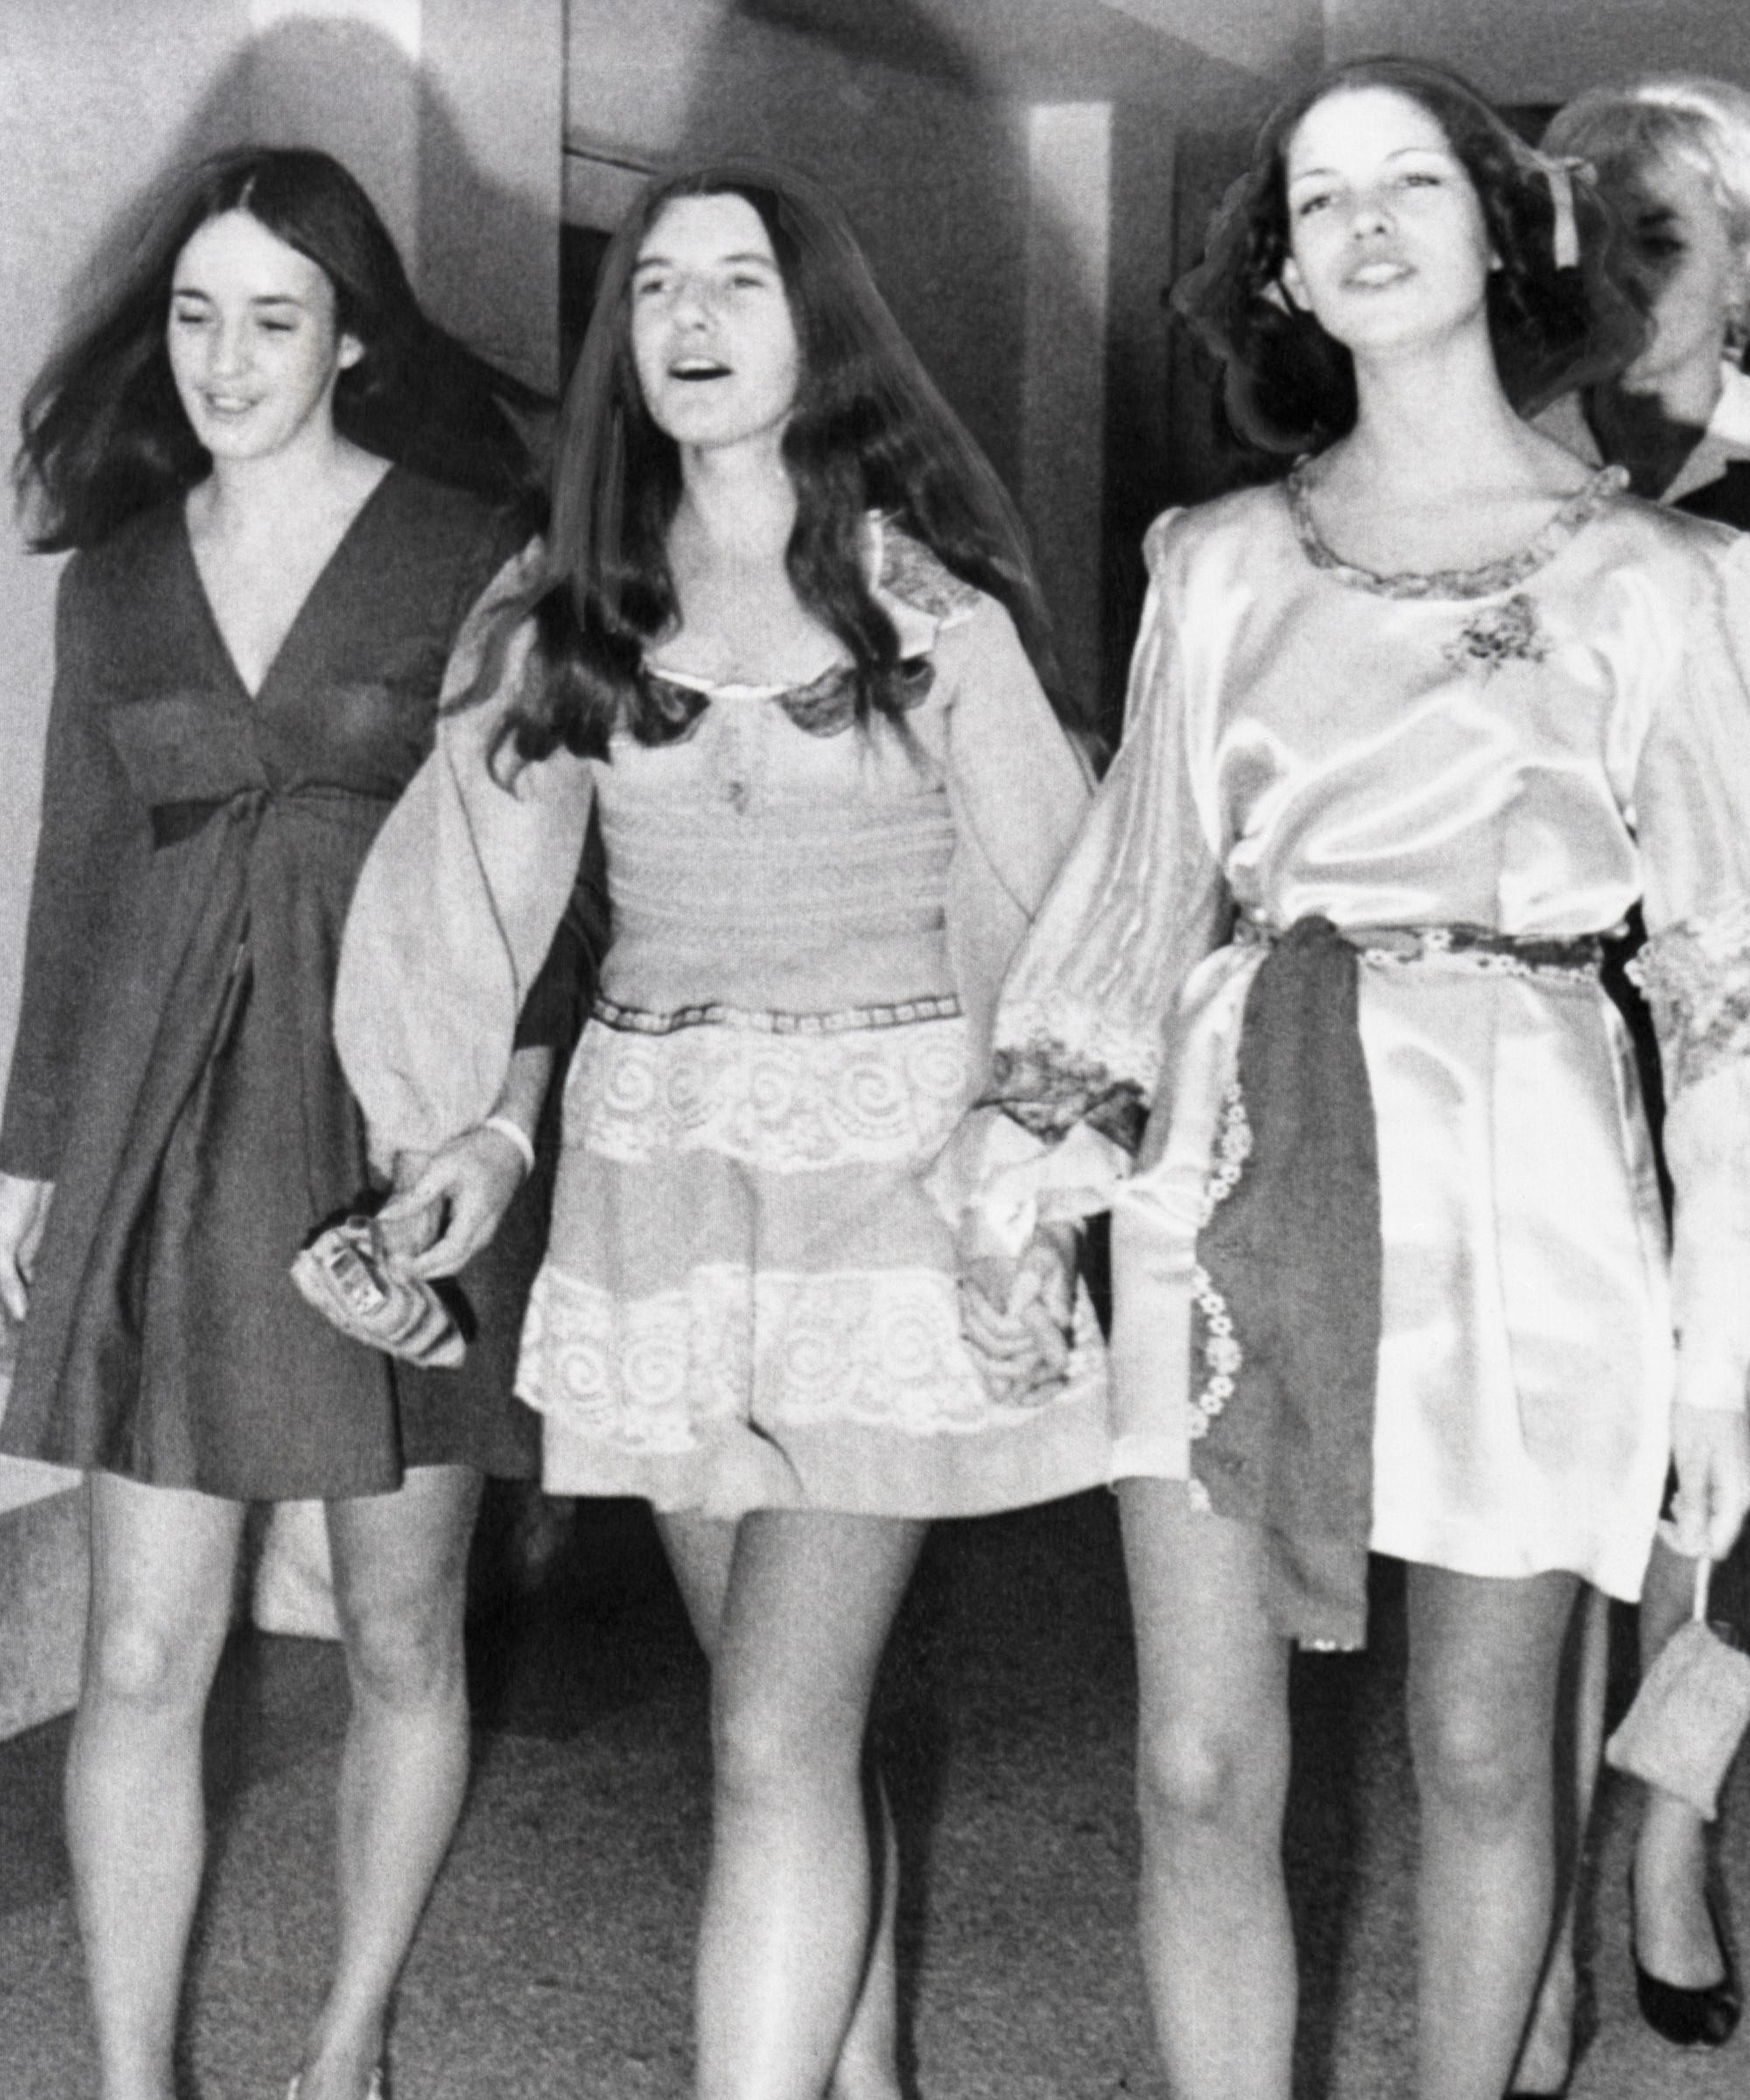 What We Know About The Manson Girls